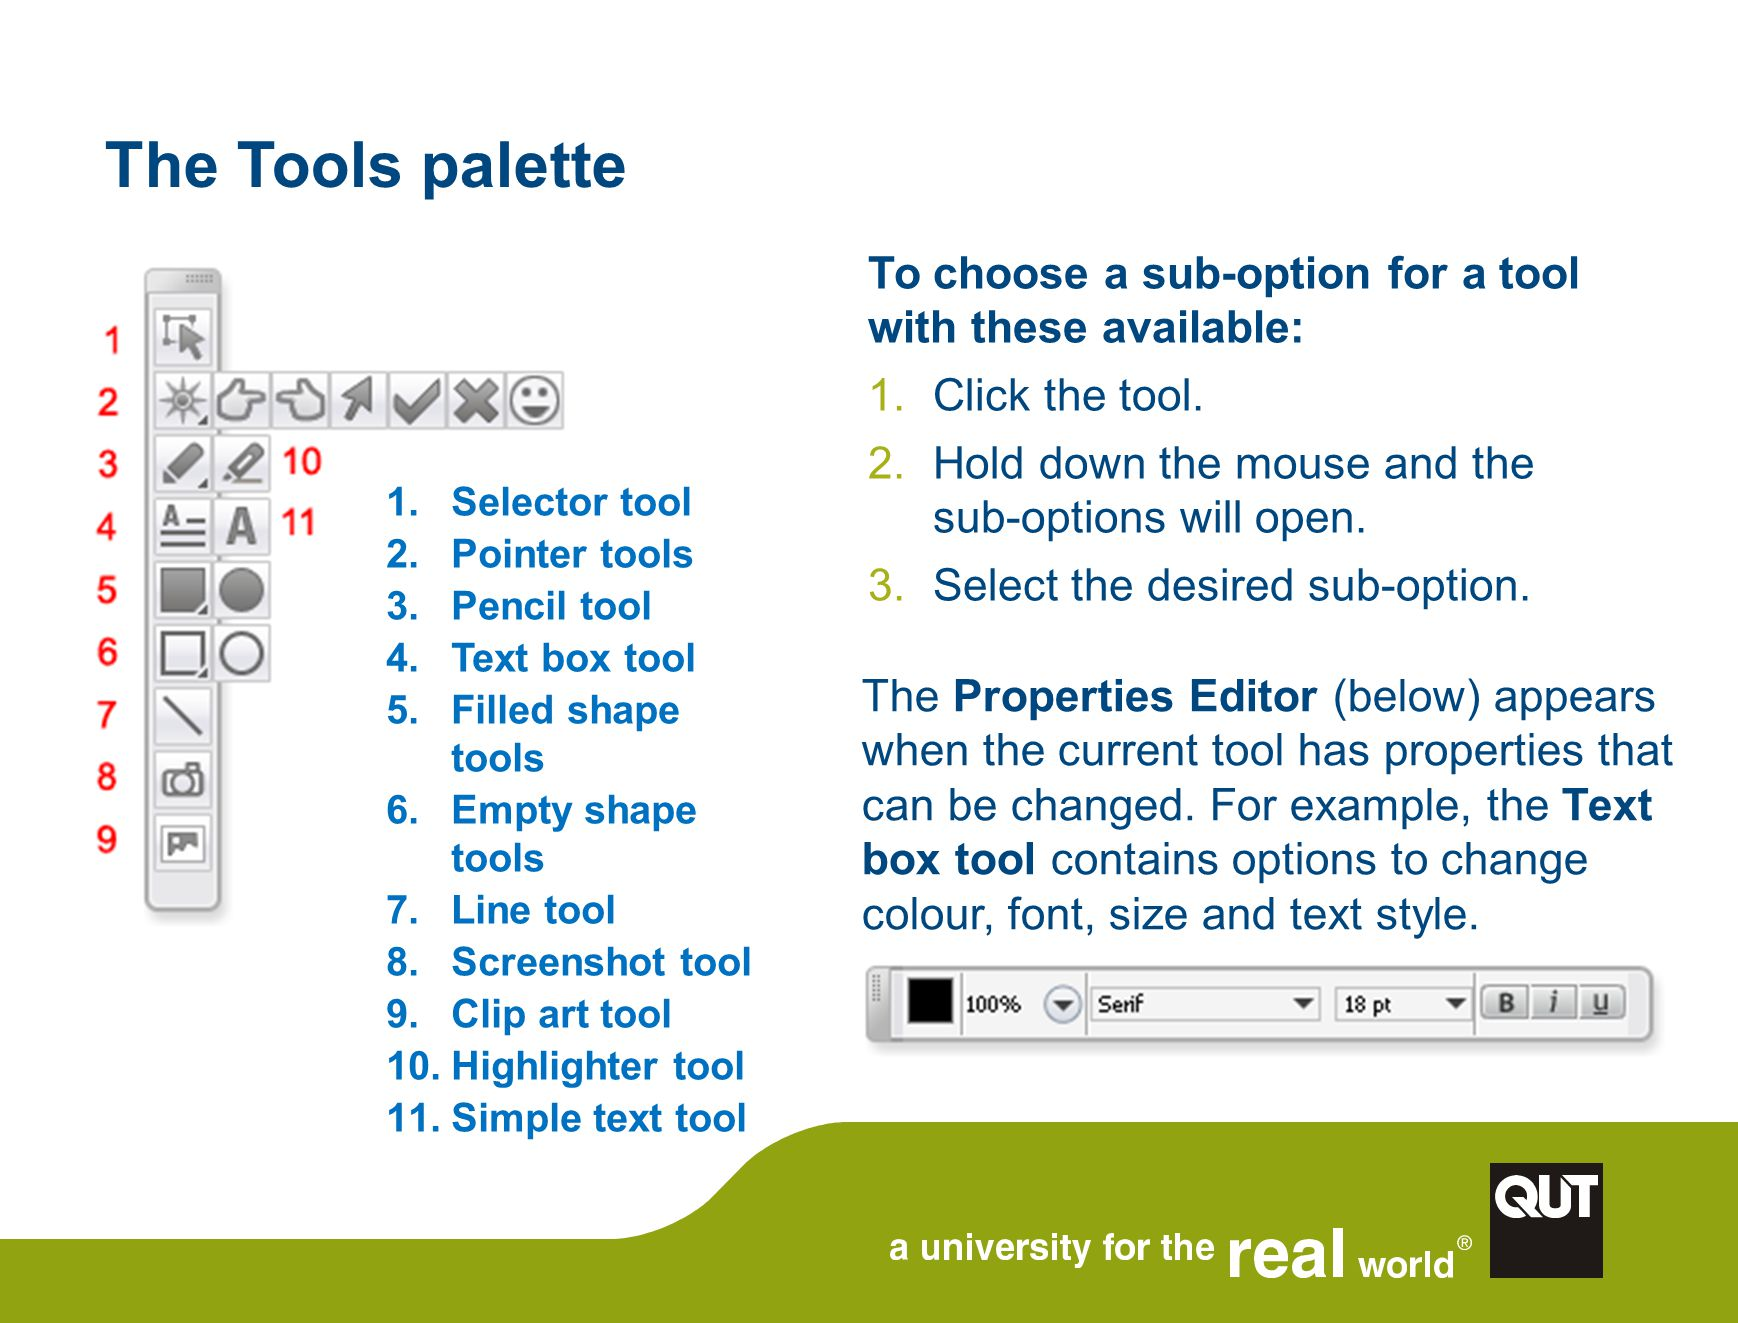 The Tools palette 1.Selector tool 2.Pointer tools 3.Pencil tool 4.Text box tool 5.Filled shape tools 6.Empty shape tools 7.Line tool 8.Screenshot tool 9.Clip art tool 10.Highlighter tool 11.Simple text tool The Properties Editor (below) appears when the current tool has properties that can be changed.